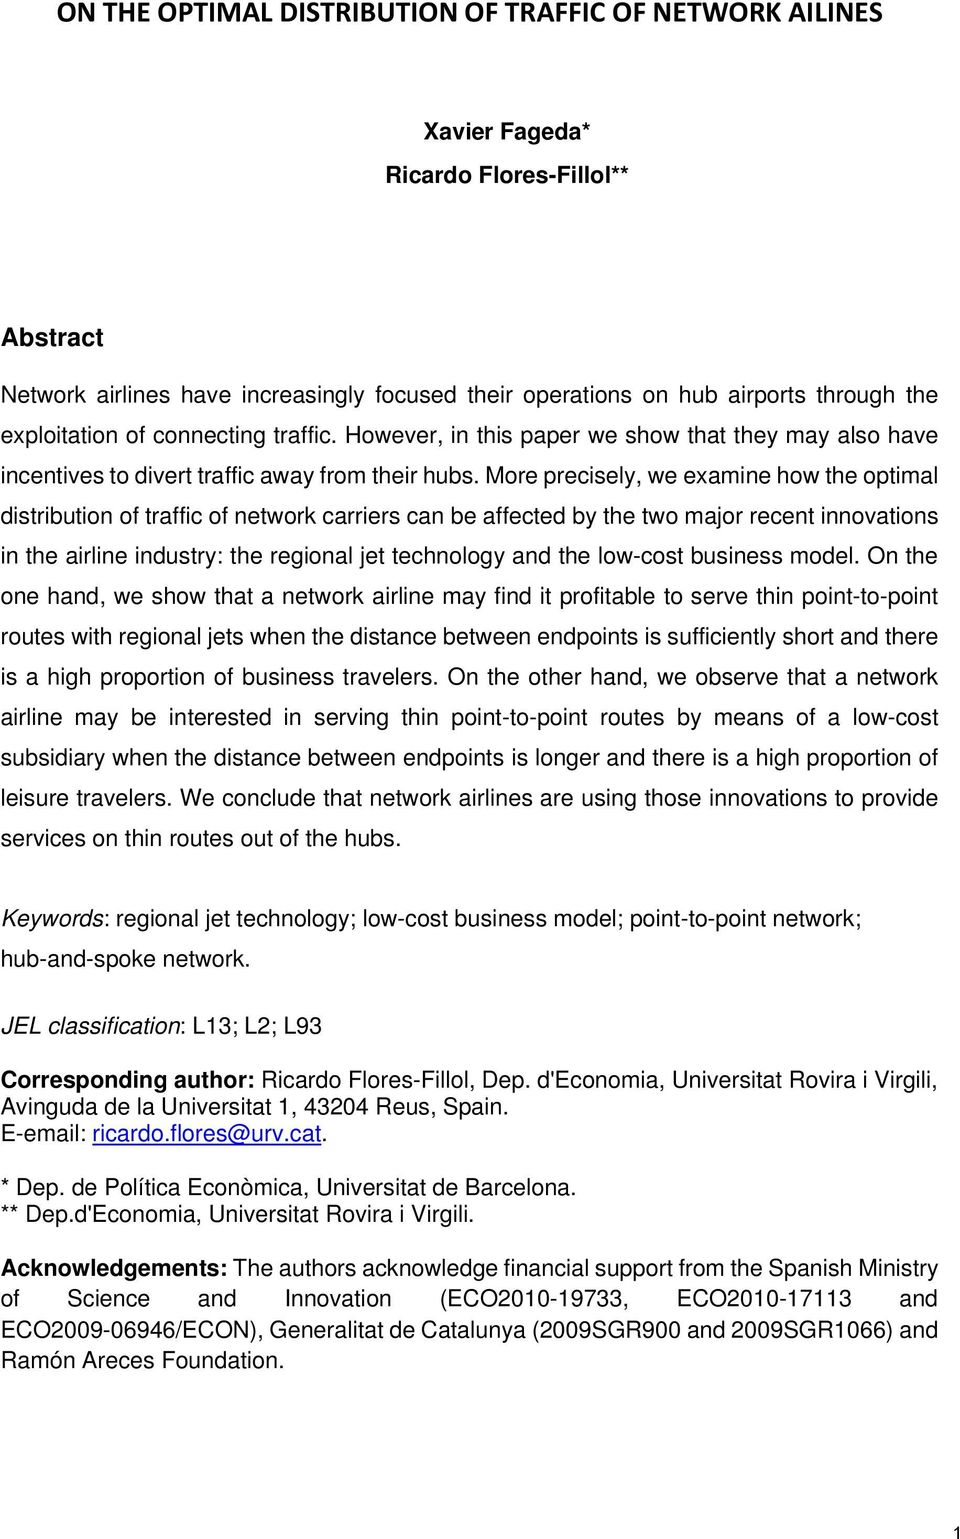 More precisely, we examine how the optimal distribution of traffic of network carriers can be affected by the two major recent innovations in the airline industry: the regional jet technology and the